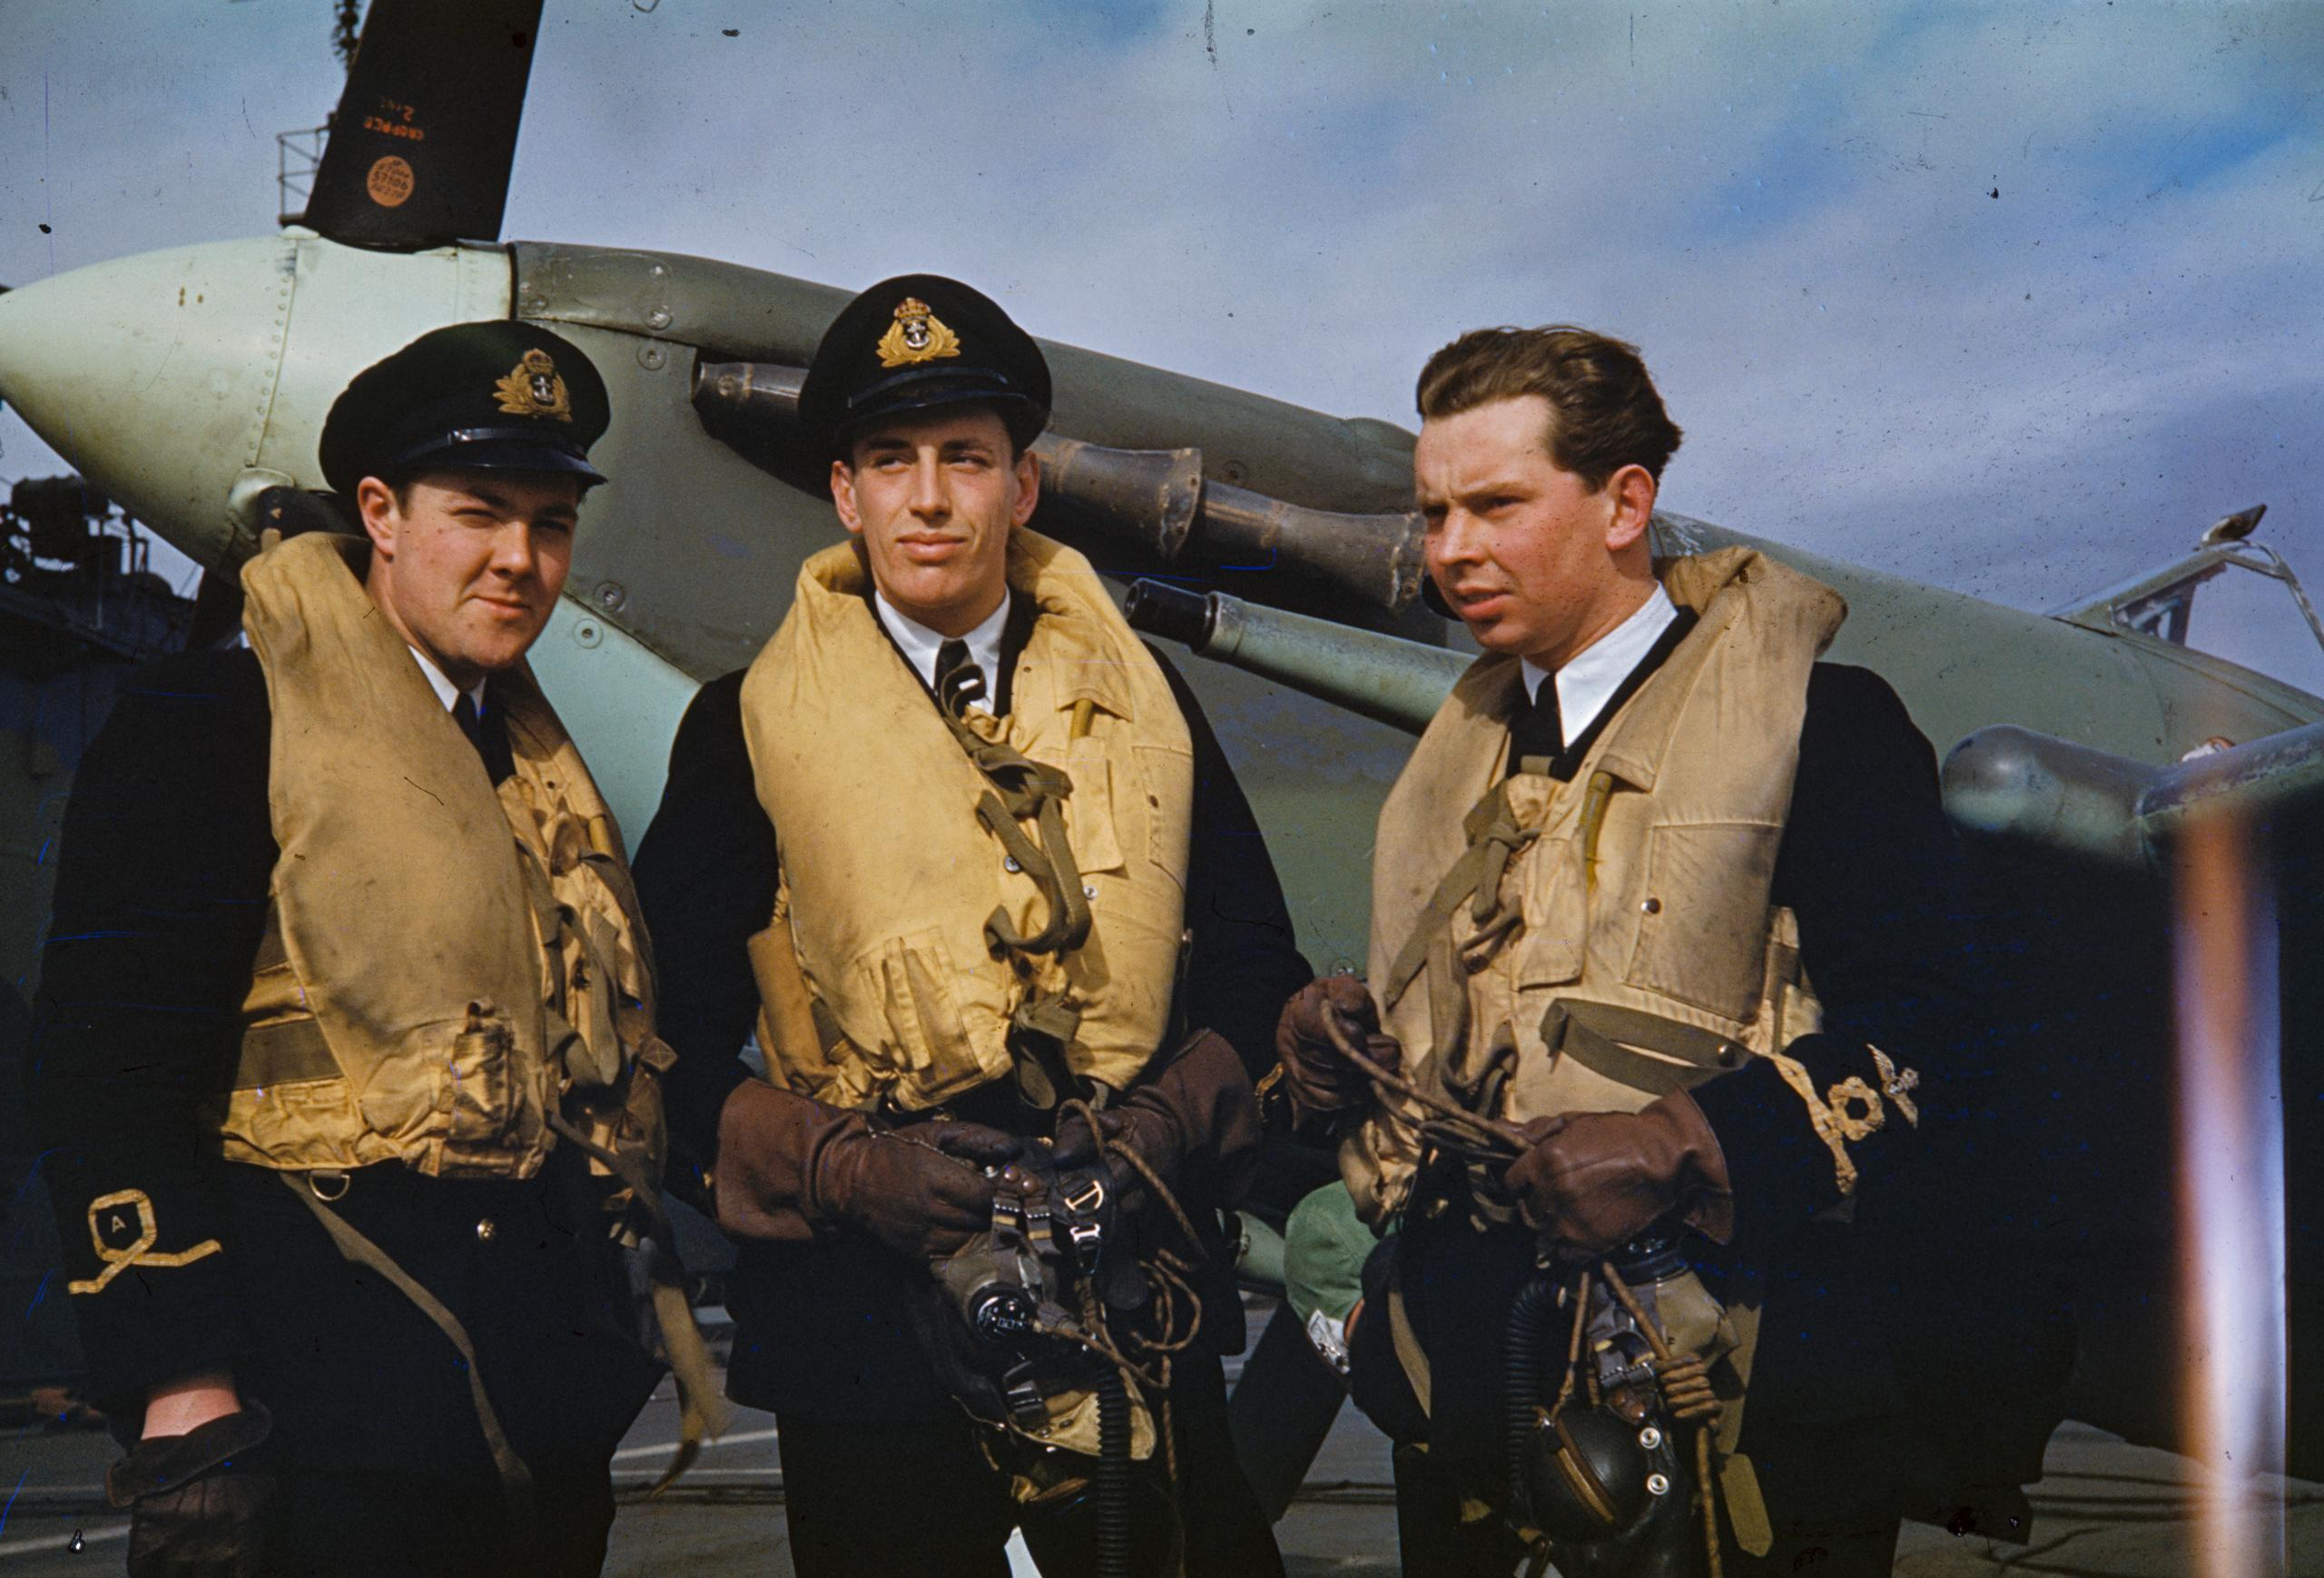 Three pilots await their orders